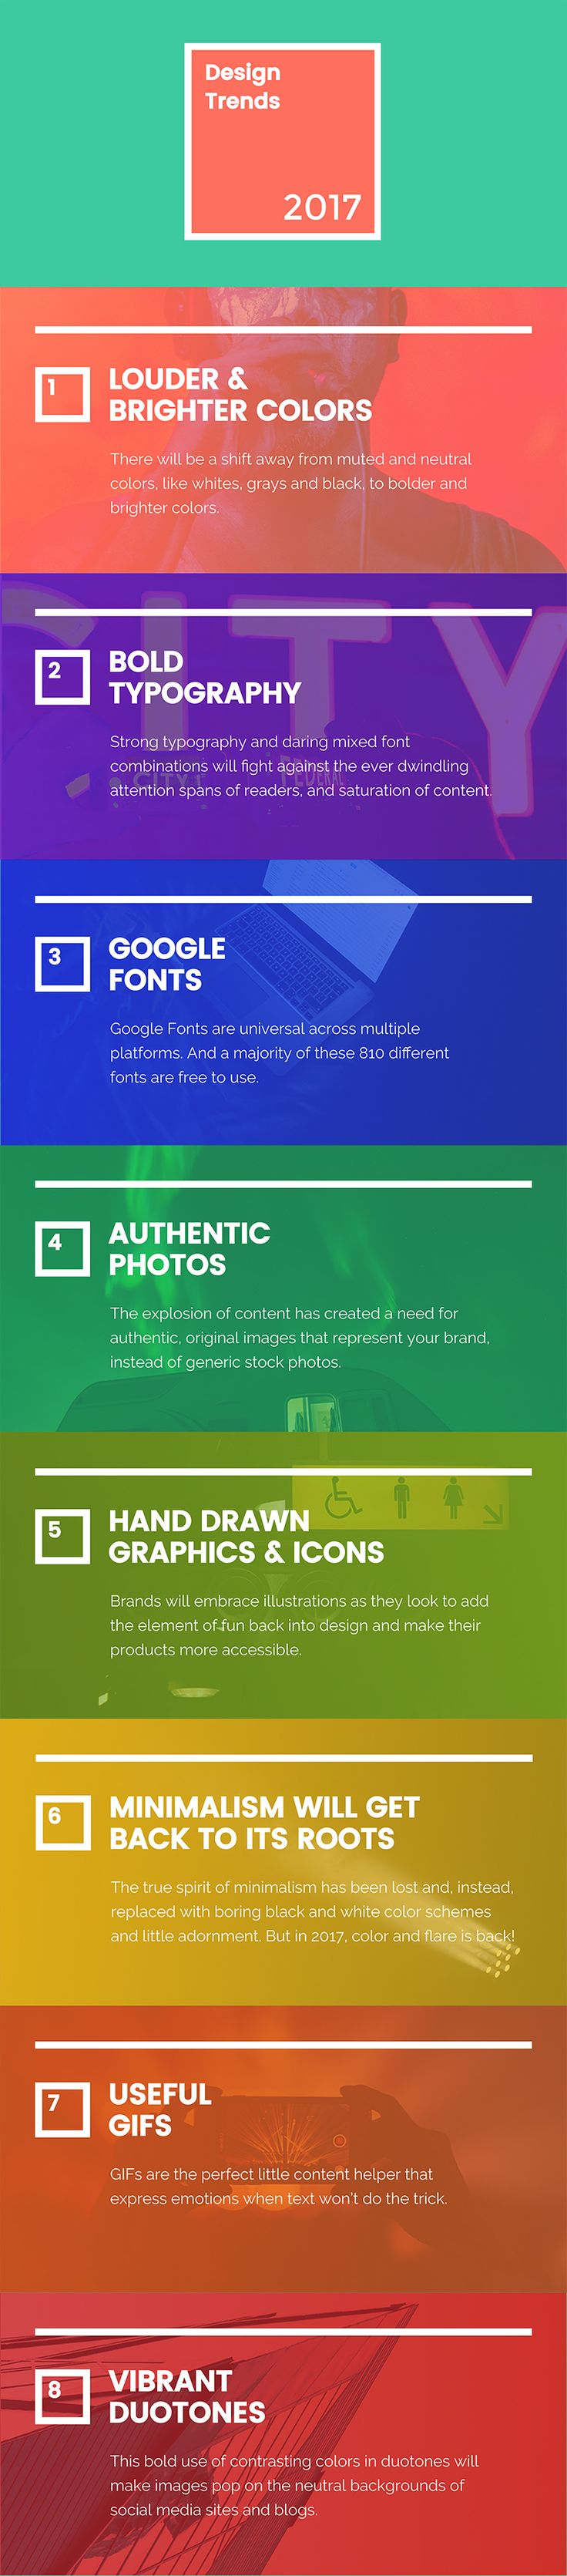 8 #GraphicDesign Trends Your Competitors Will Use to Stand Out in 2017 #Infographic